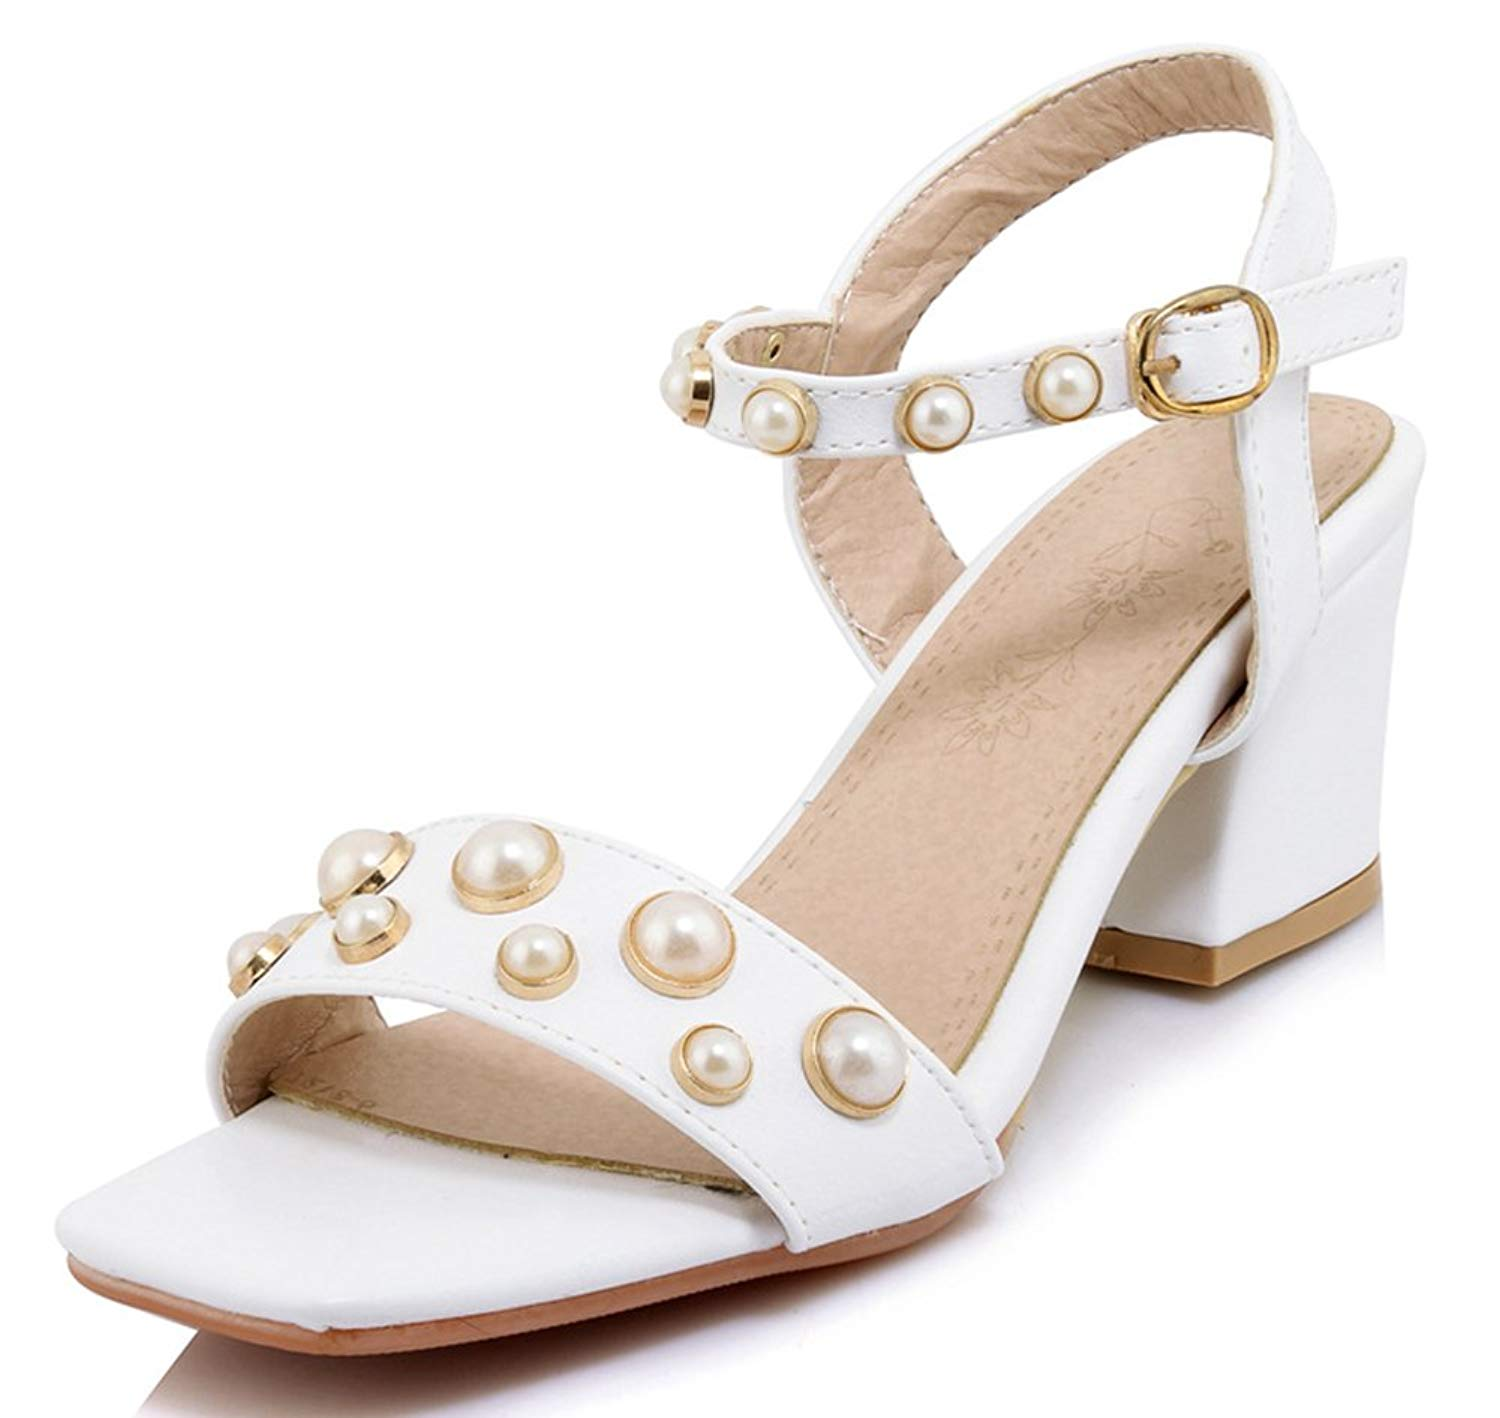 58c27c02d6 Get Quotations · SHOWHOW Women's Lovely Pearls Ankle Strap Chunky Heel Mid  Heel Sandals for Party